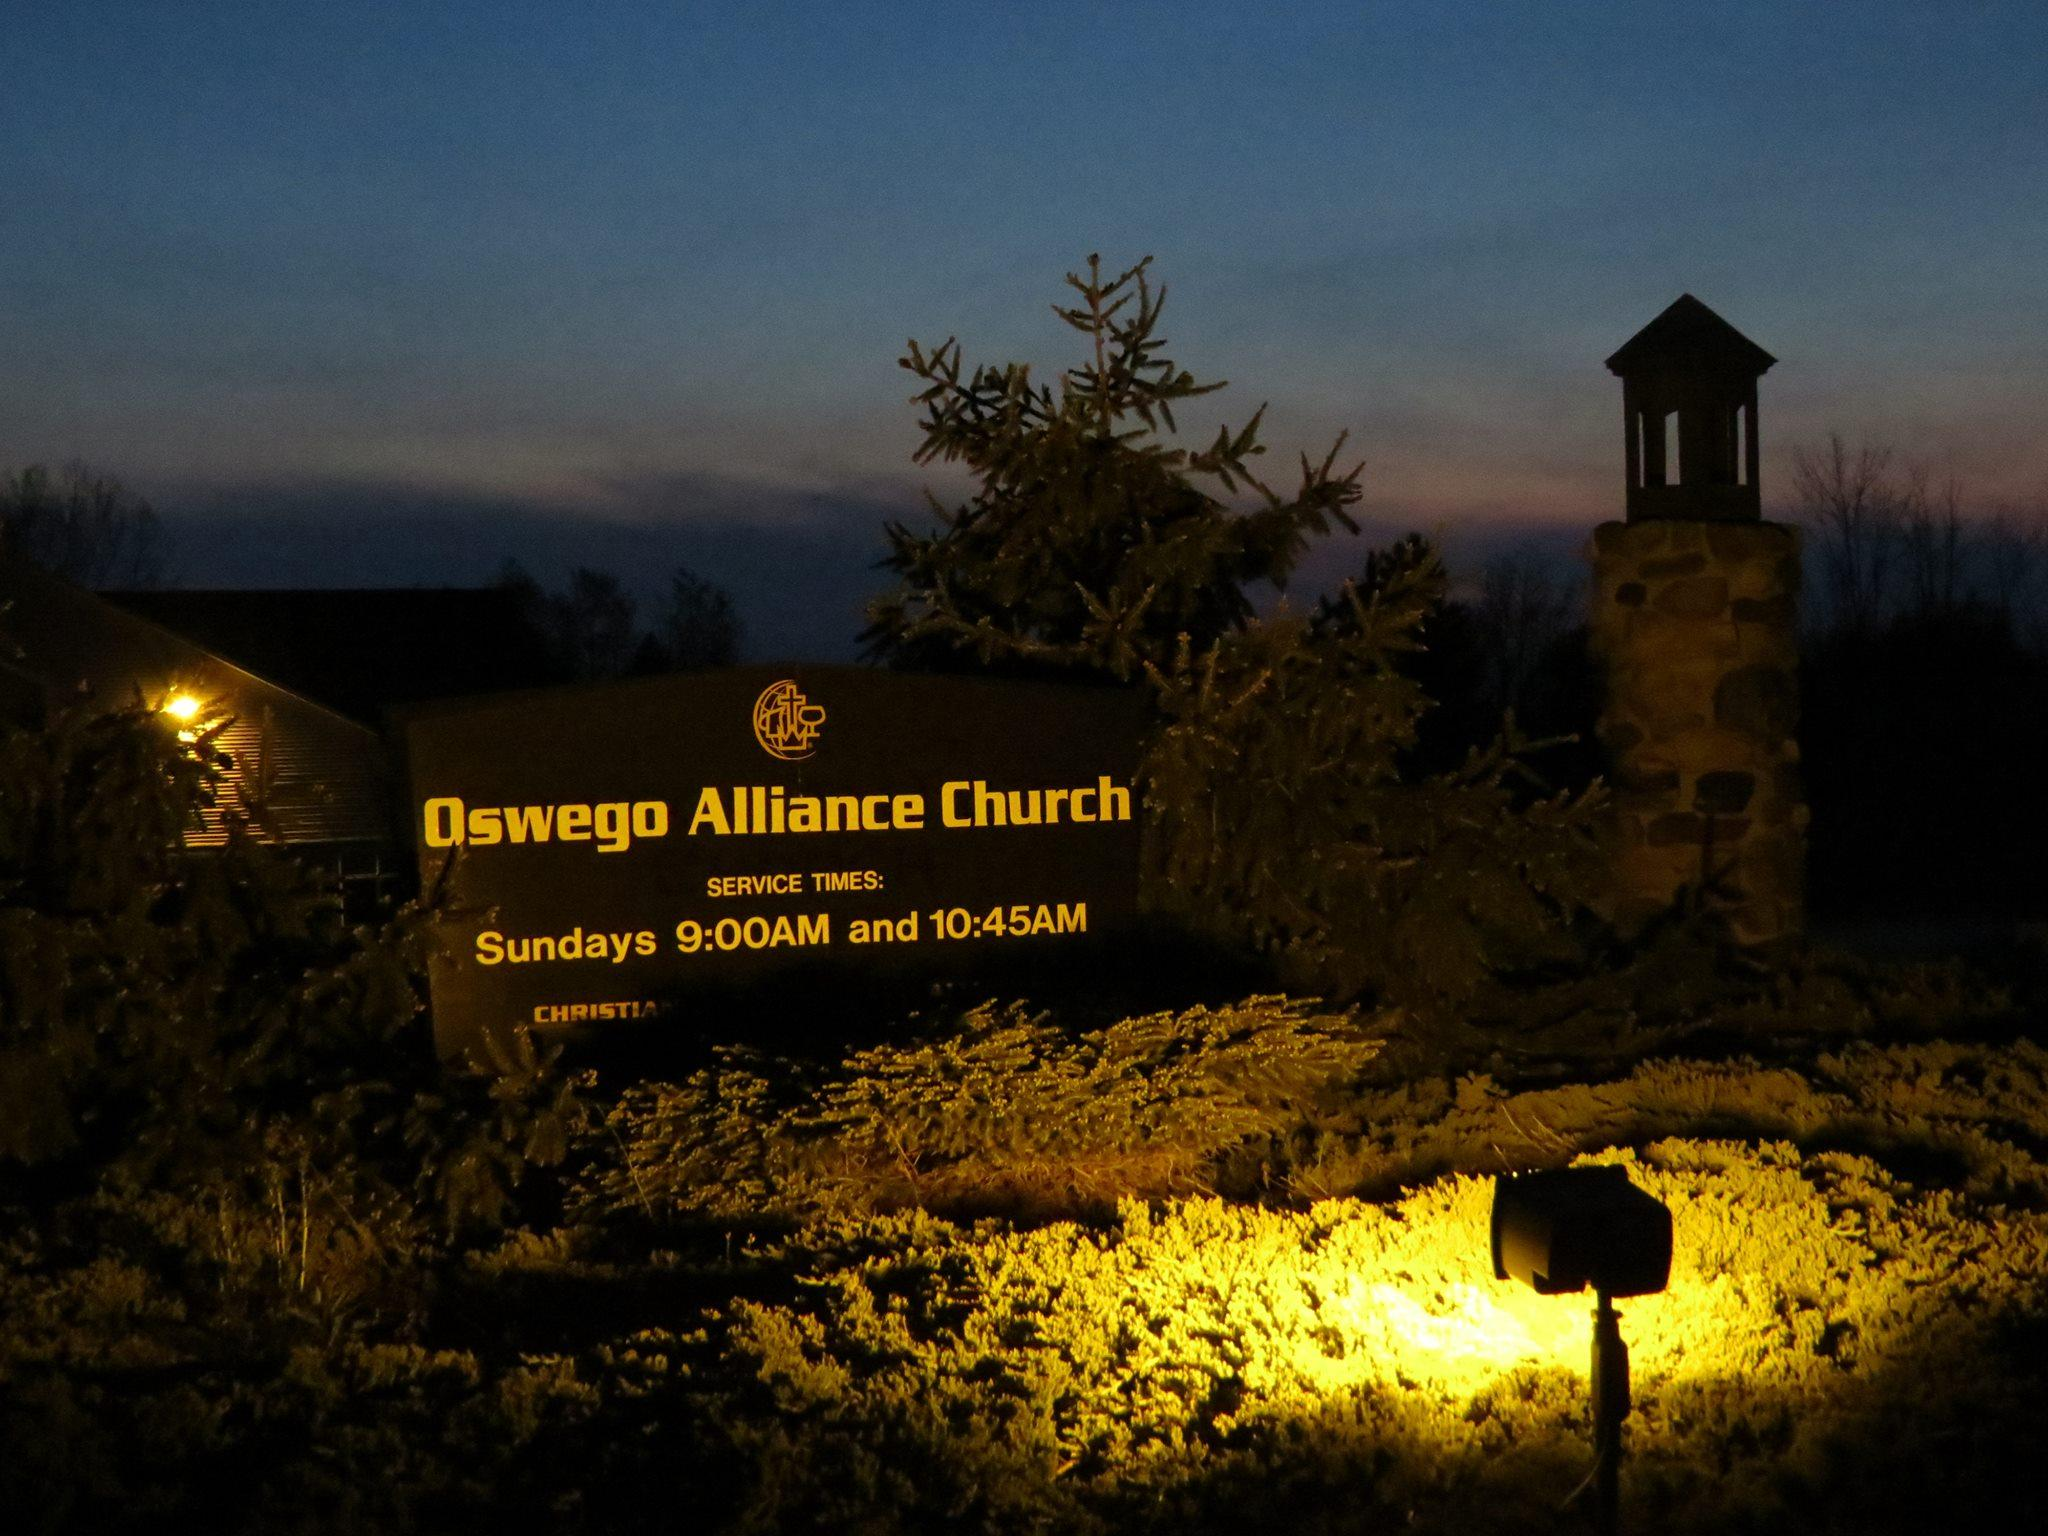 Oswego Alliance Church